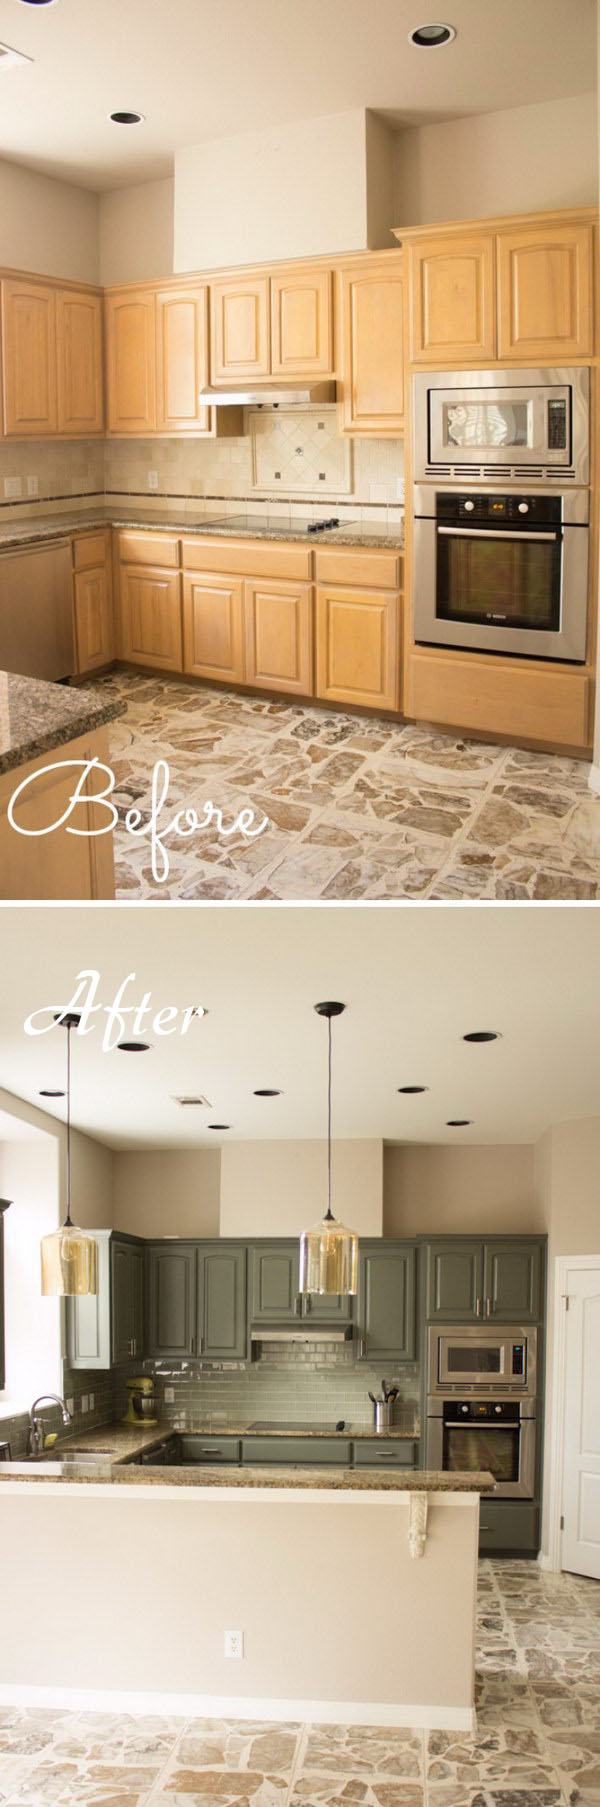 Add Character To Your Kitchen Using Pendant Lights 44 45 Genius Kitchen Makeover Ideas